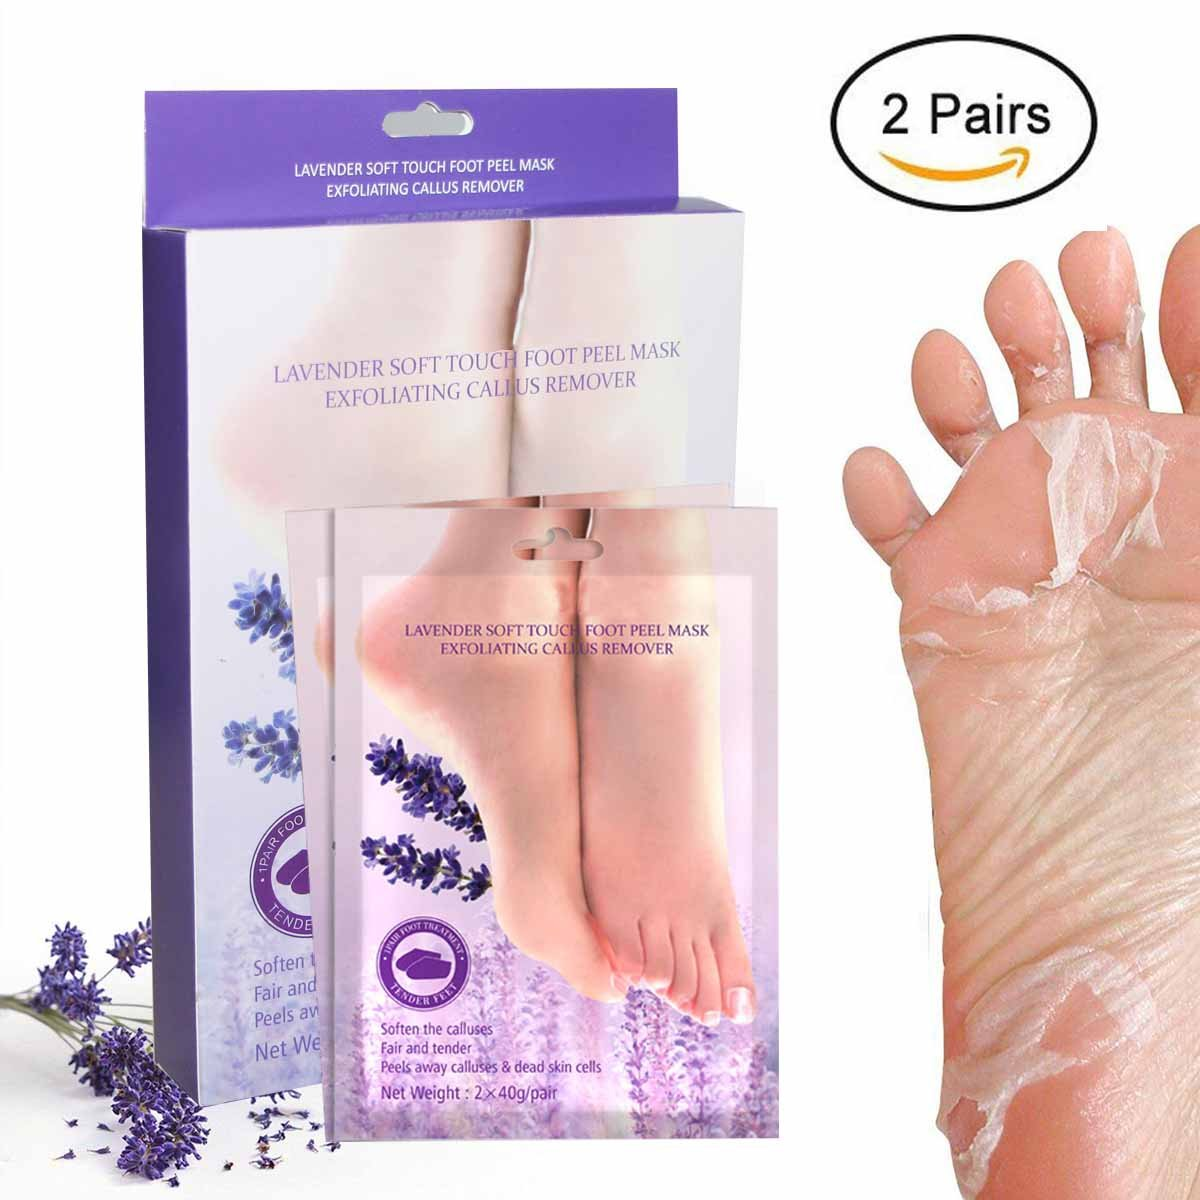 Youmeet Foot Peel, Foot Peeling Mask, Foot Mask, Baby Feet Foot Peel - Lavender Scented Exfoliating Foot Socks, Natural Exfoliator for Dry Dead Skin and Calluses, Baby Your Foot in One Week, for Men & Women YMTECH YFM-1